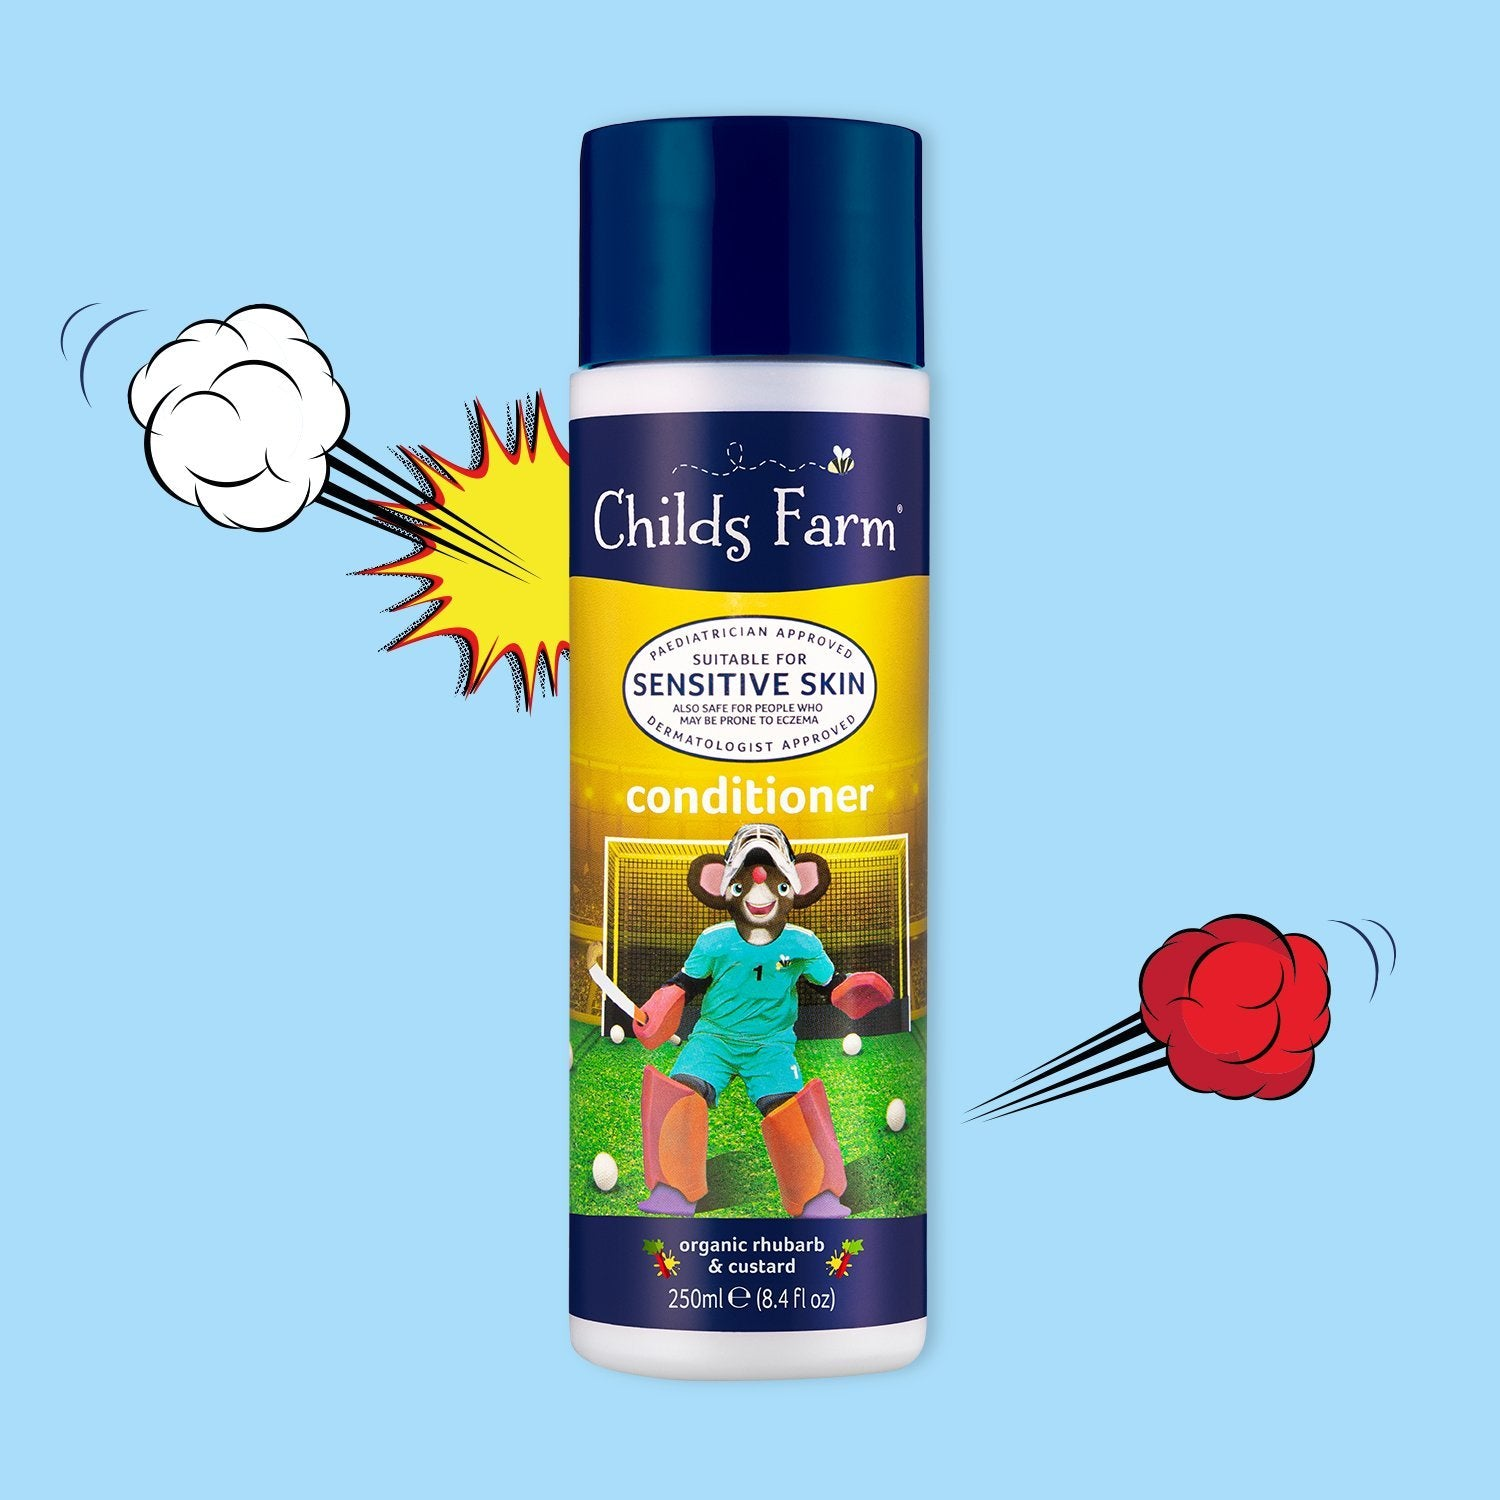 WE ARE CHILDS FARM